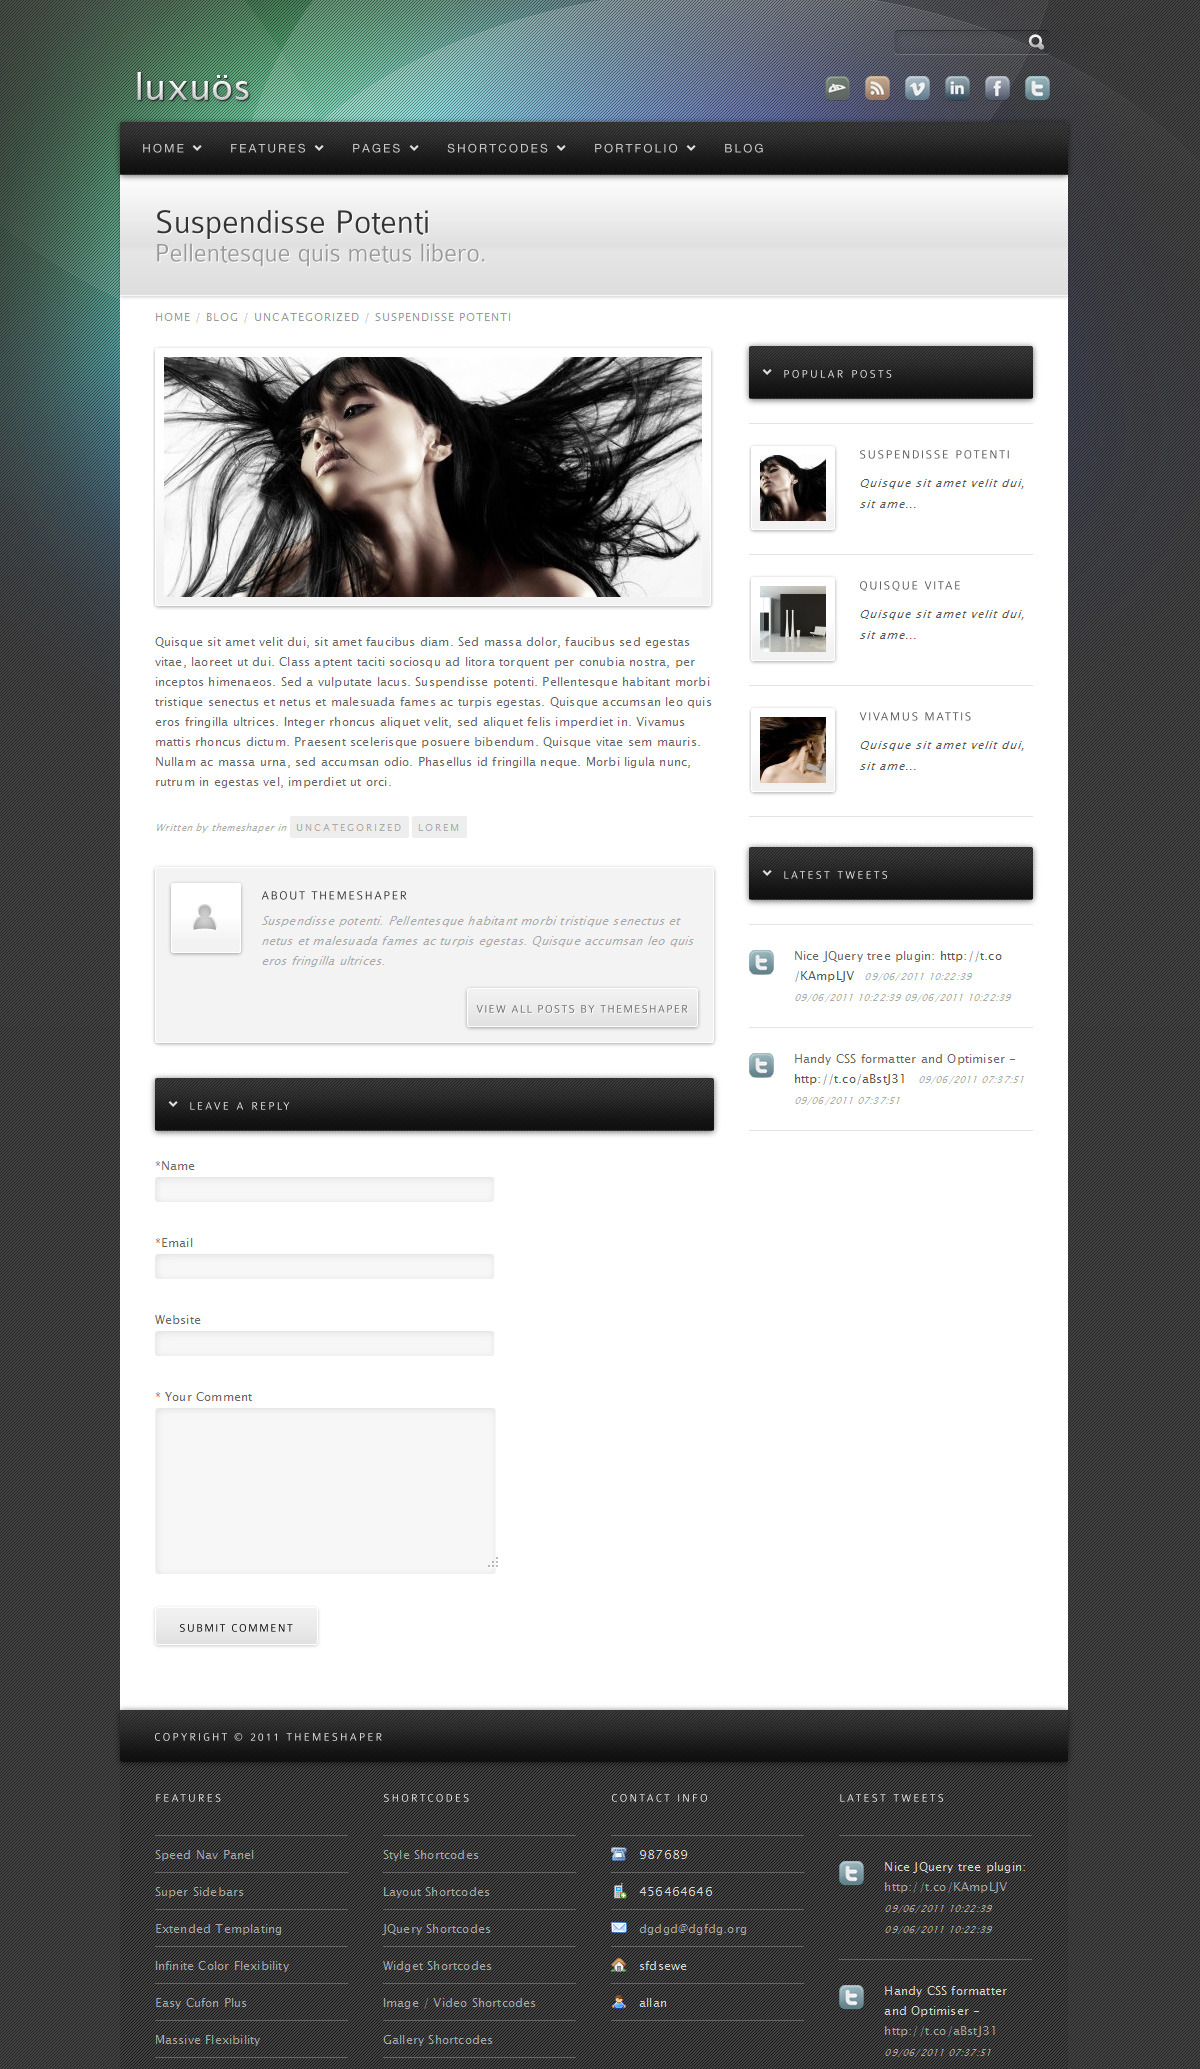 Luxuos - The single post page, default 2 column template